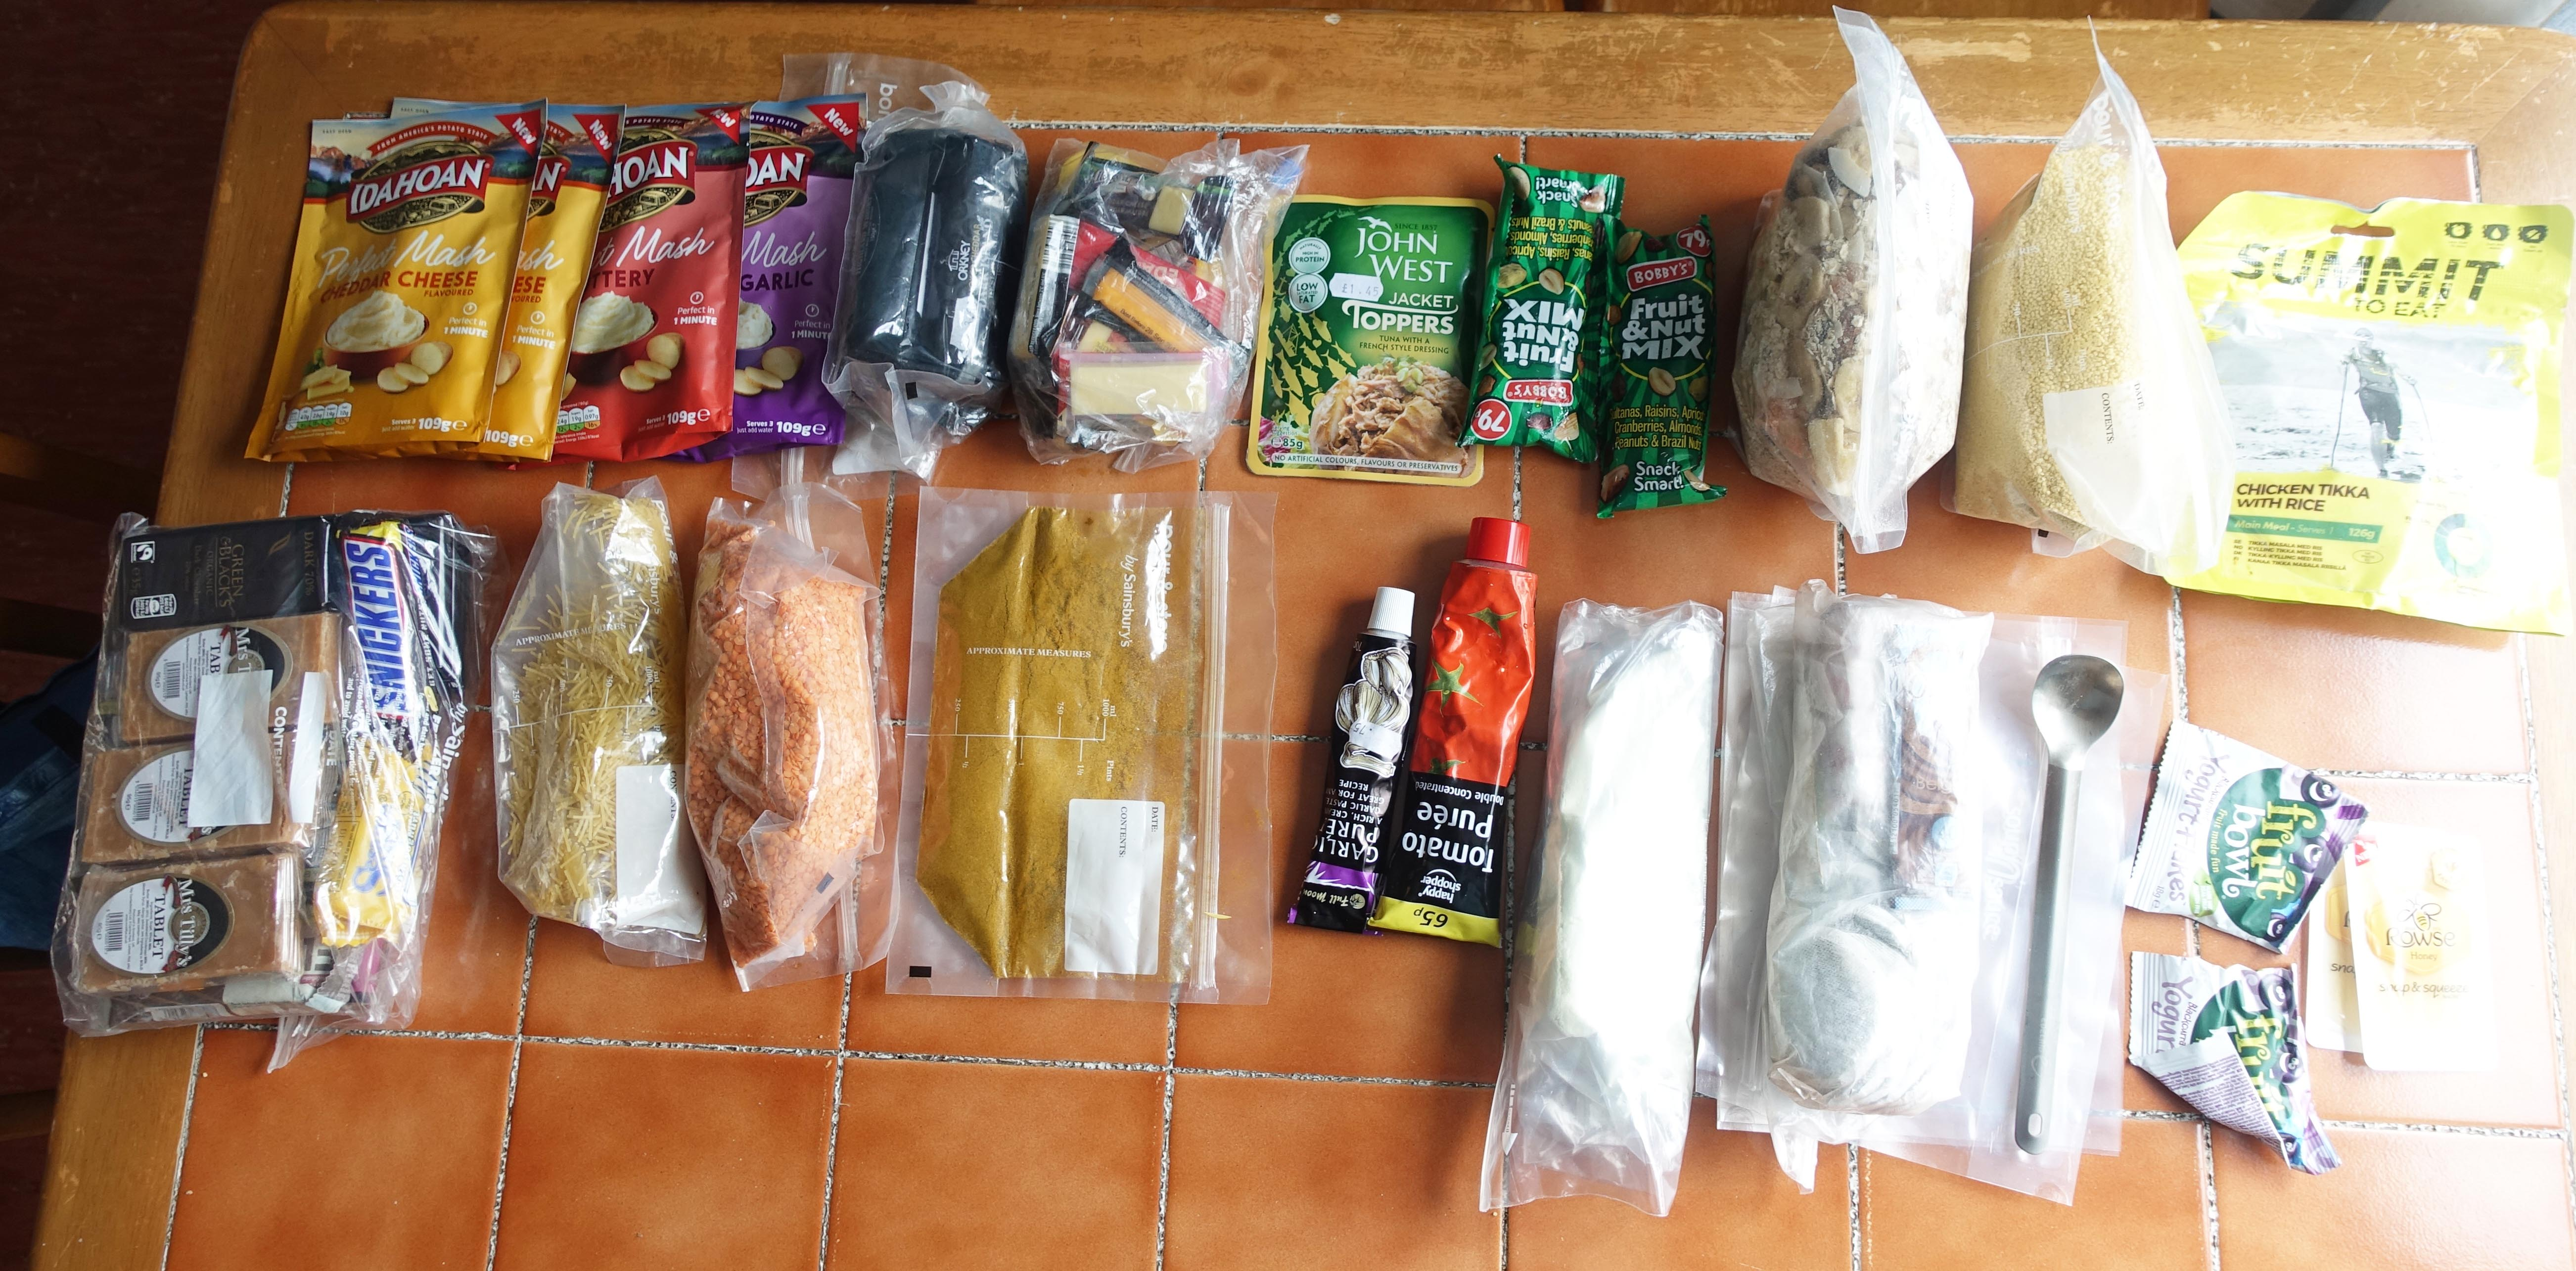 Food resupply at Ullapool. To achive this meant a seven mile roadwalk off the Cape Wrath Trail, before rejoining it after a day's rest here.